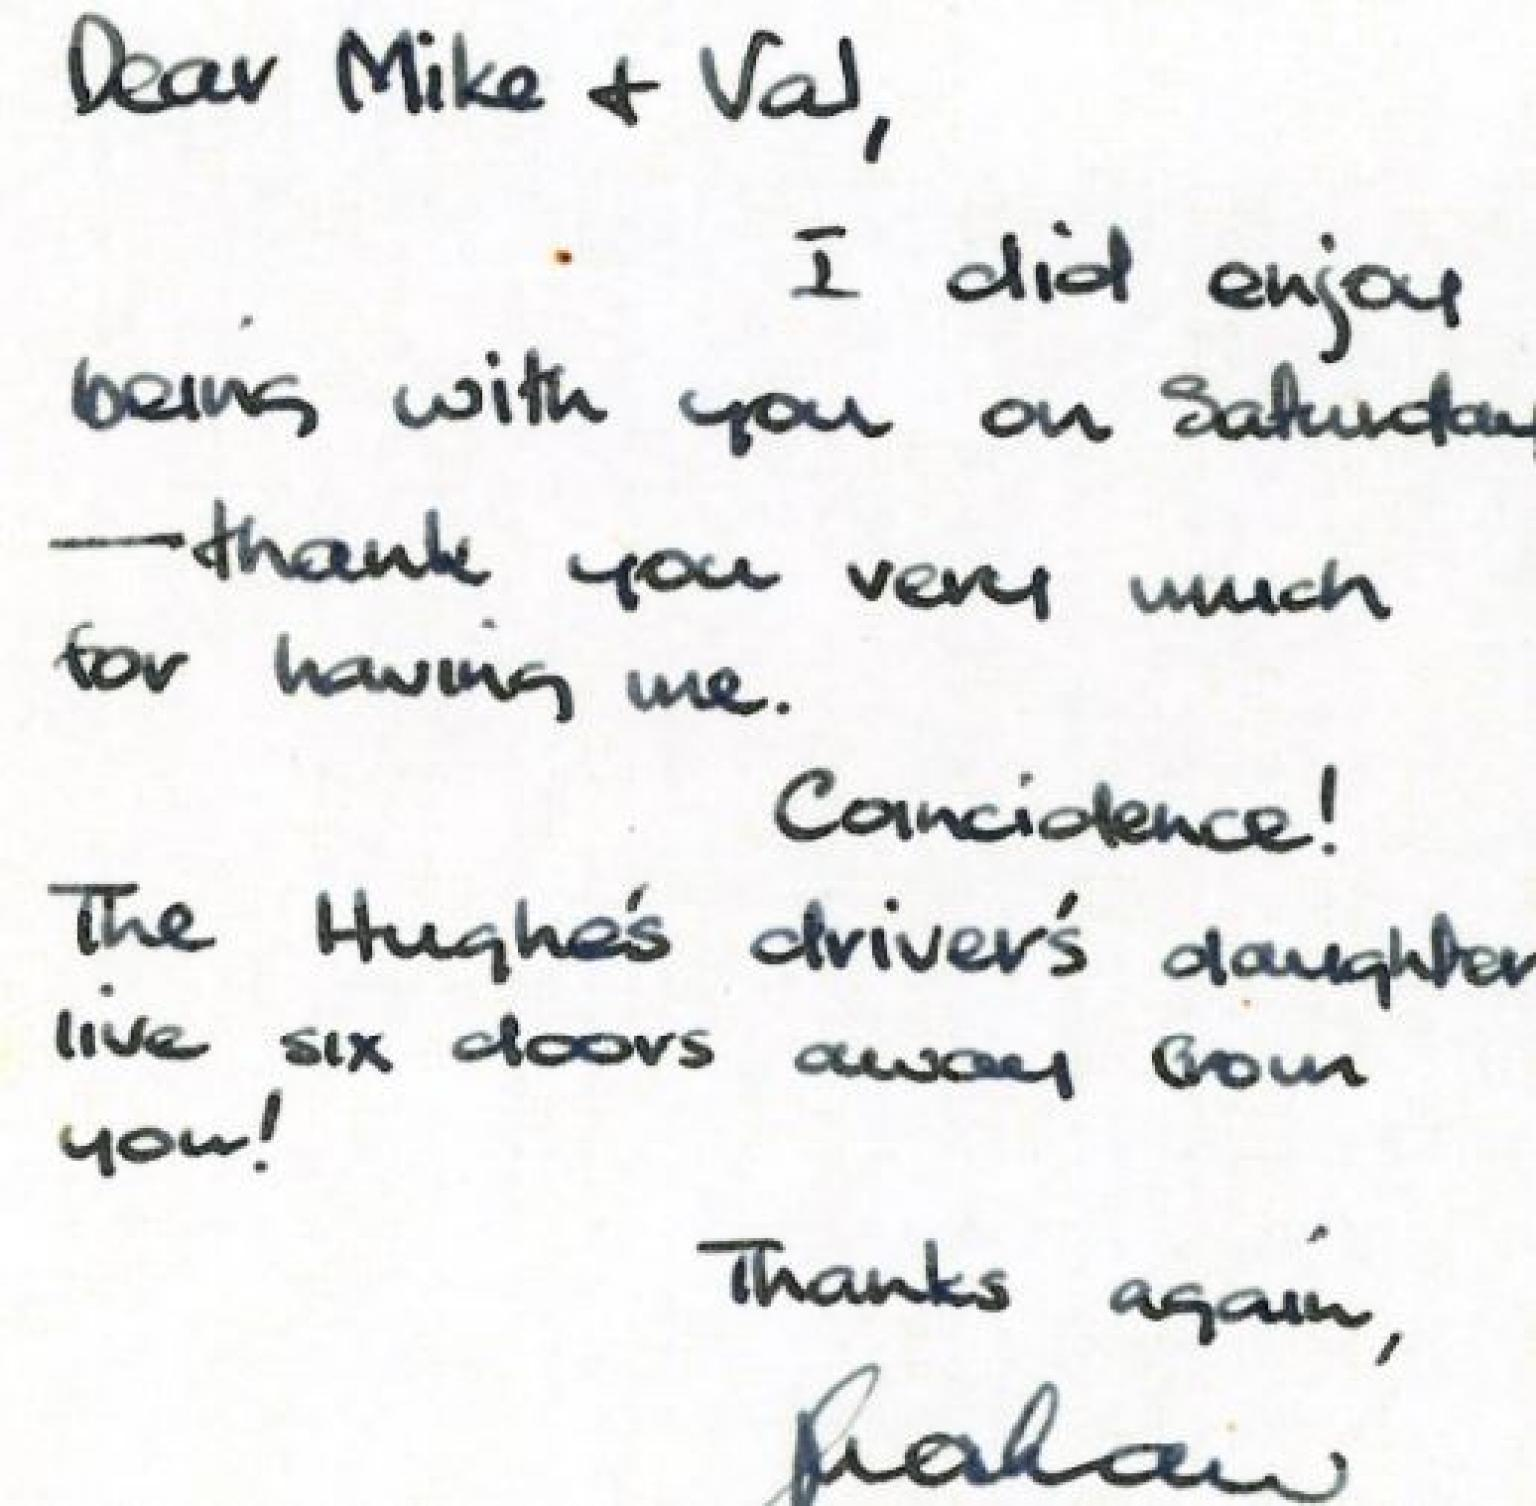 Handwritten thank note from Graham Kennedy to Mike and Val McColl Jones